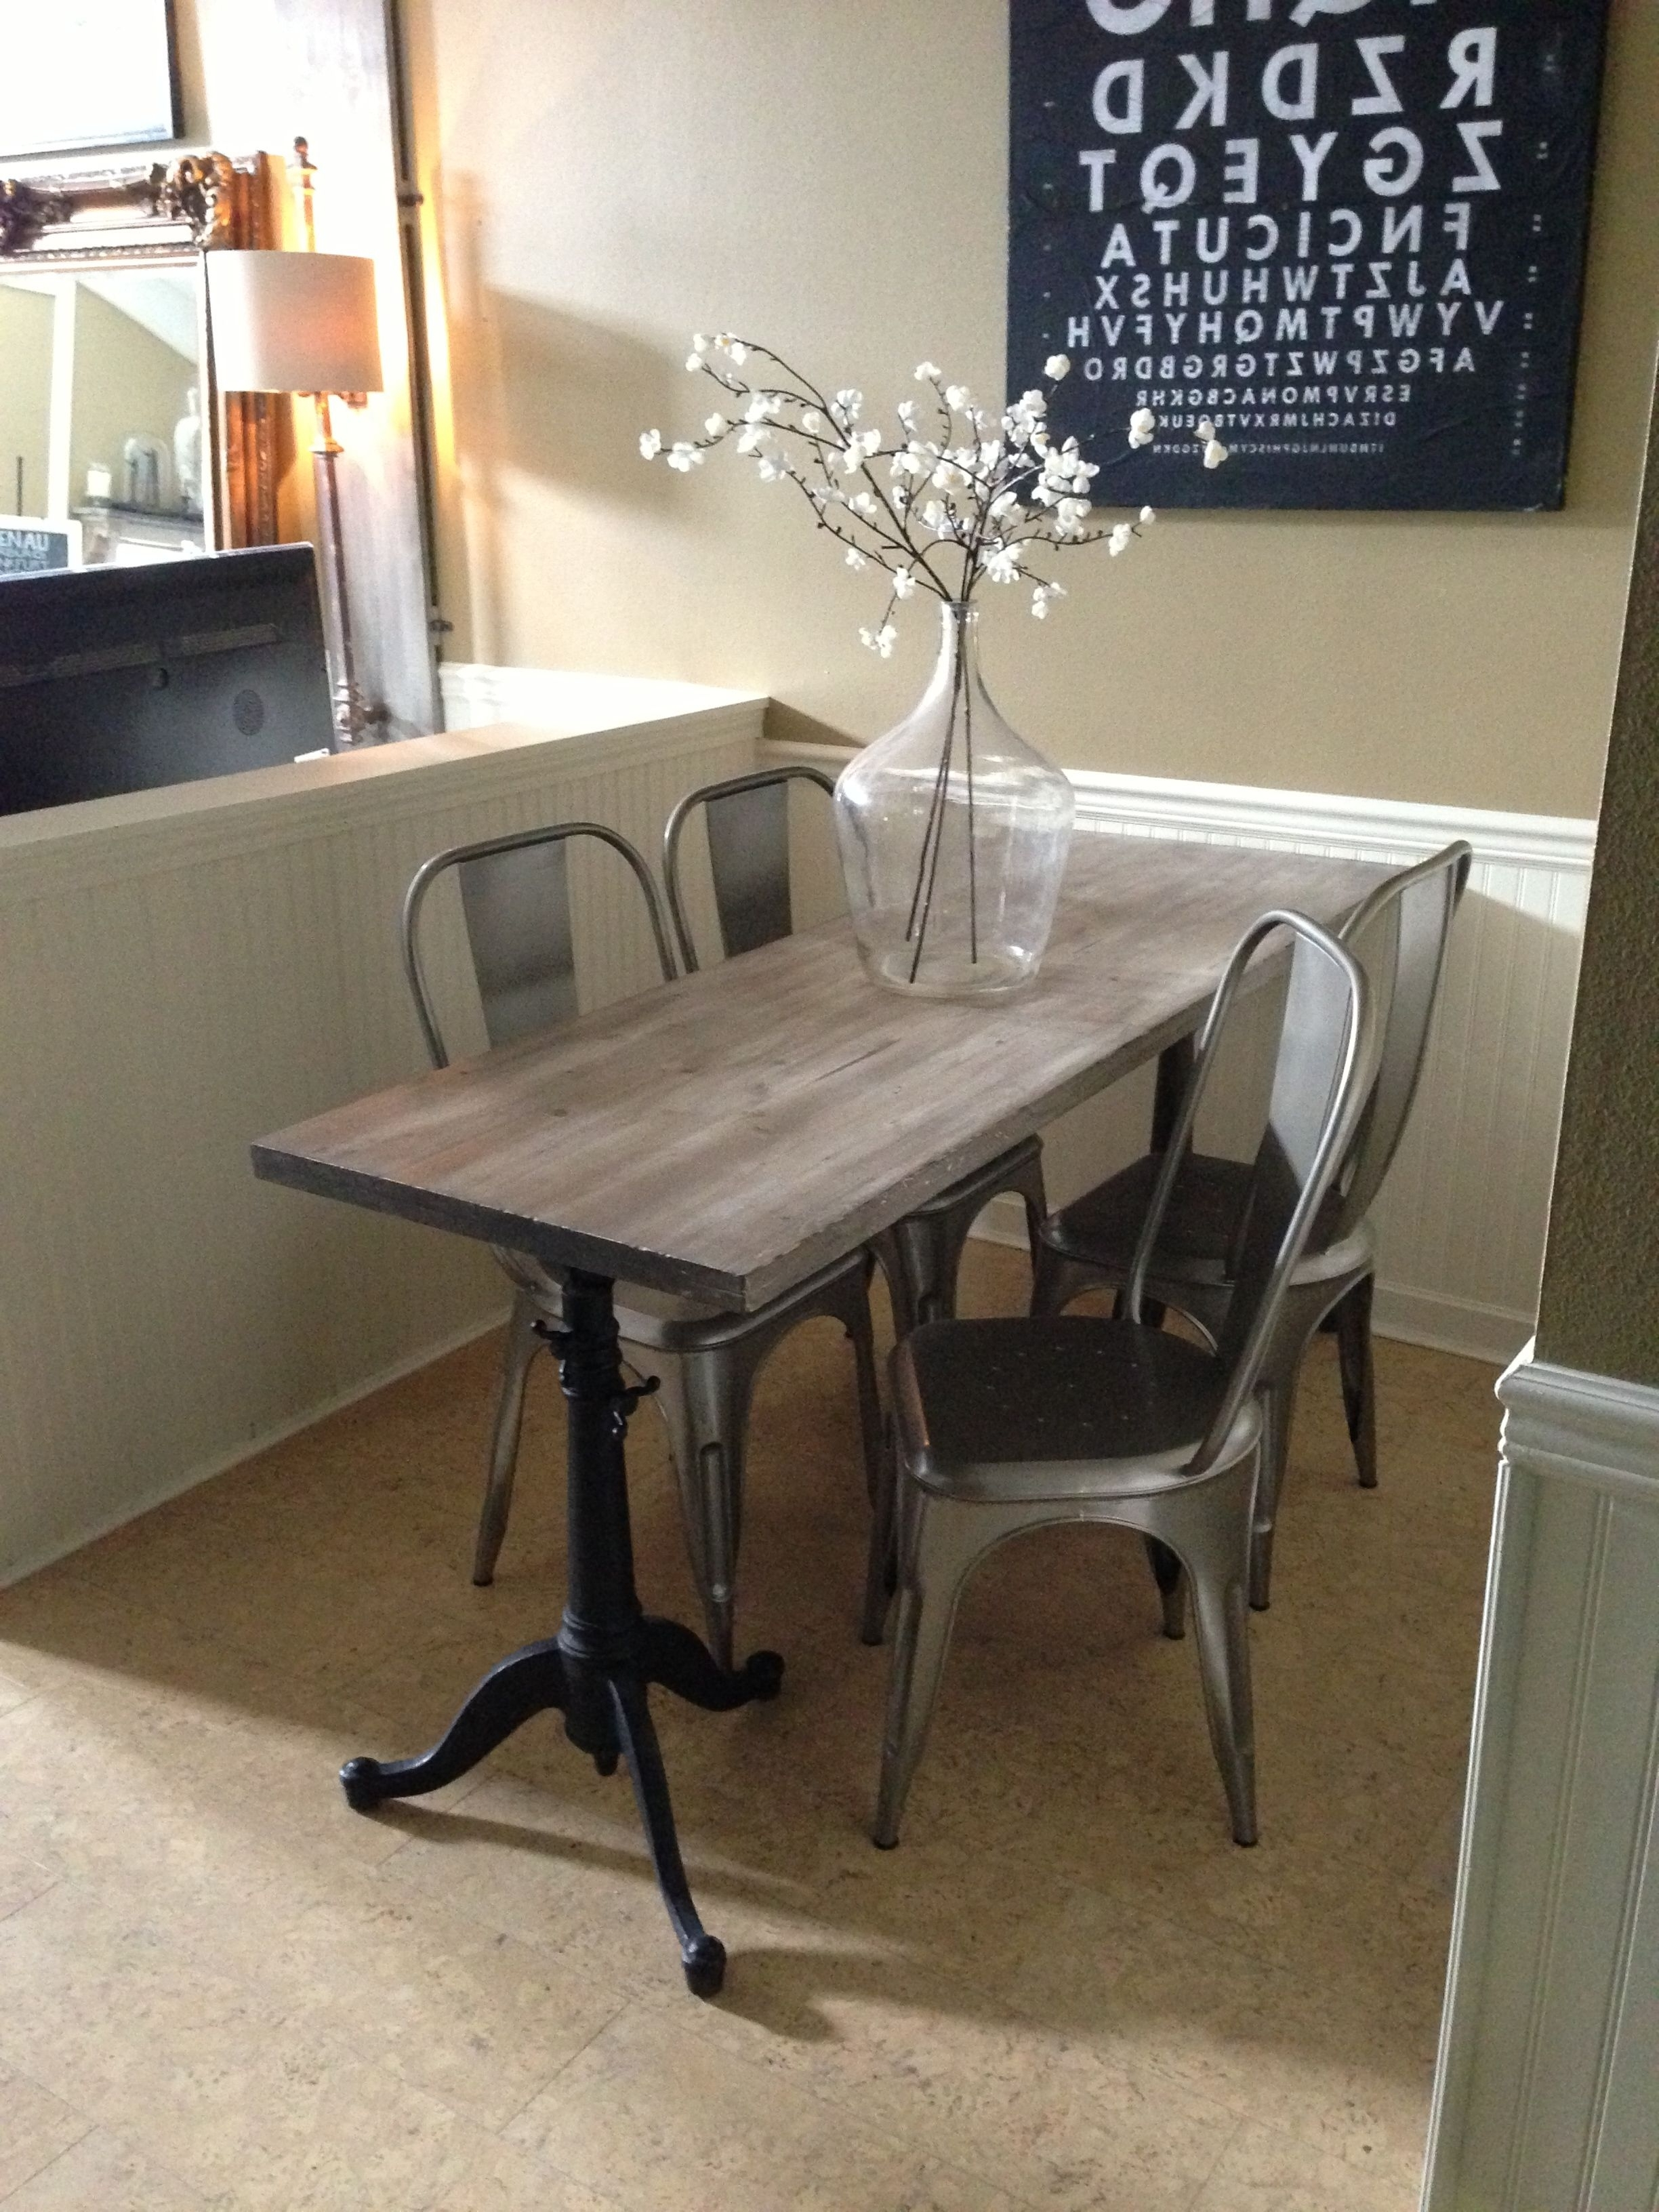 Narrow Dining Table For Narrow Space (View 23 of 25)